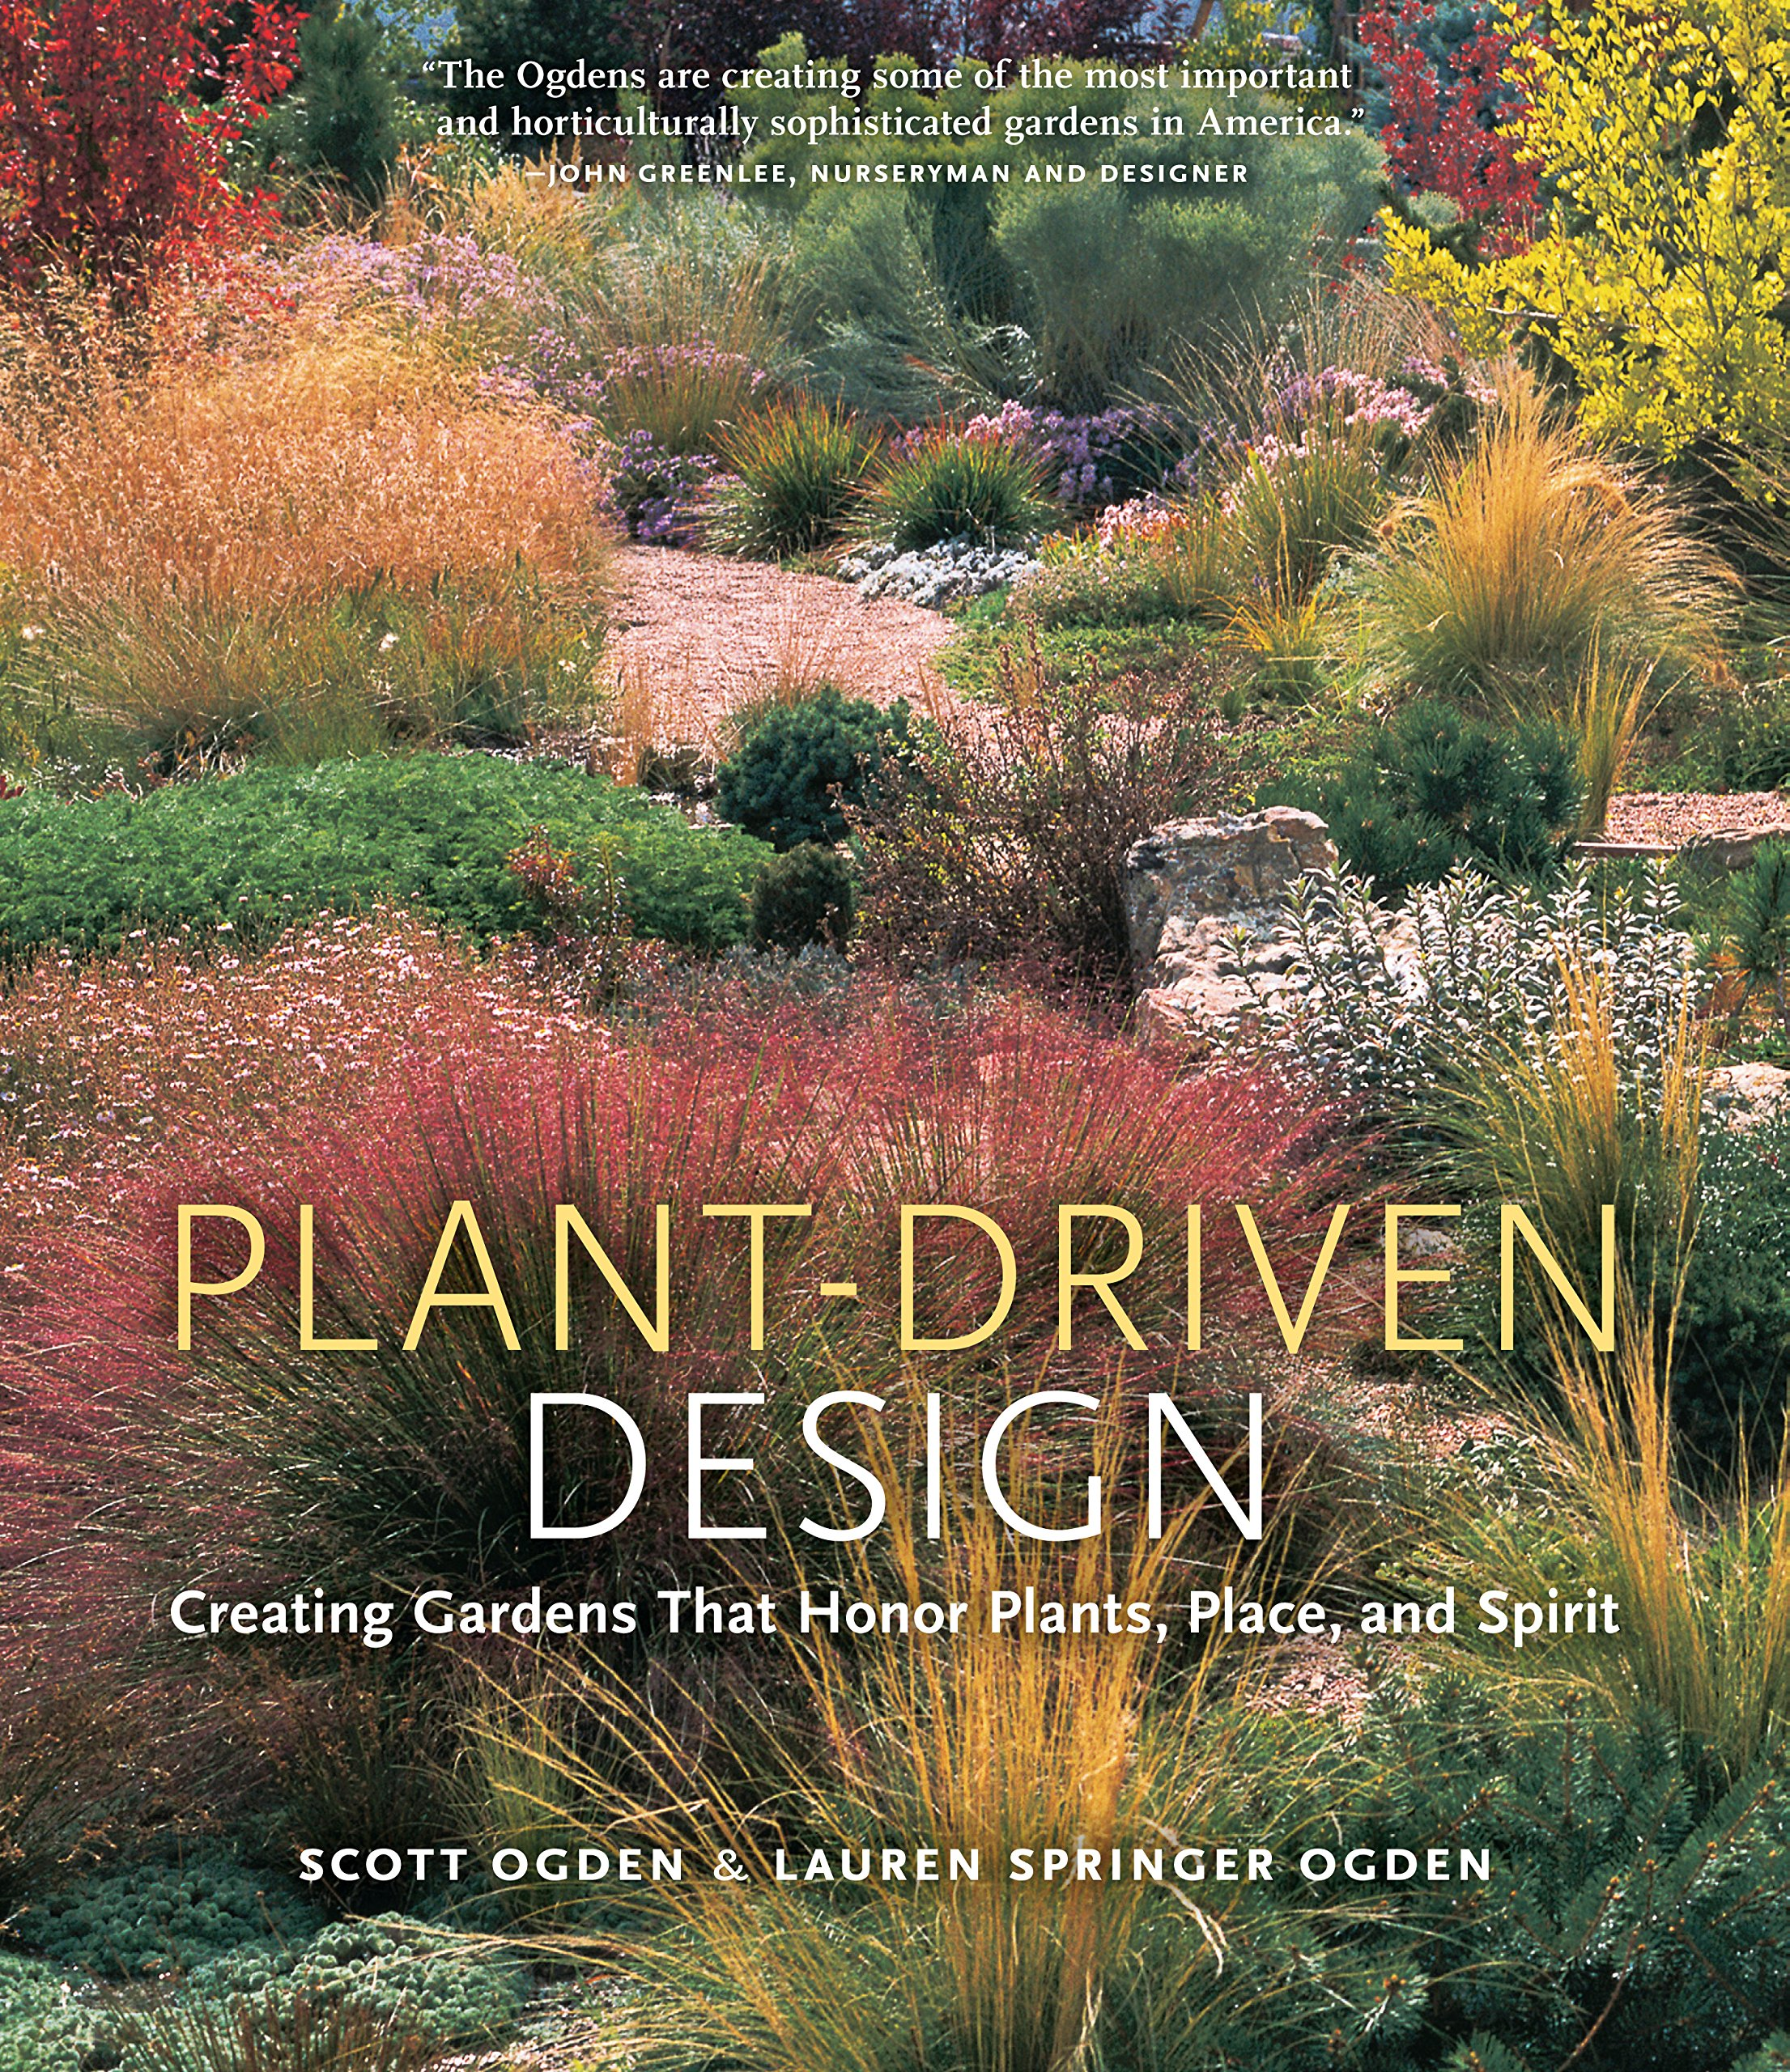 Marvelous Plant Driven Design: Creating Gardens That Honor Plants, Place, And Spirit:  Scott Ogden, Lauren Springer Ogden: 9780881928778: Amazon.com: Books